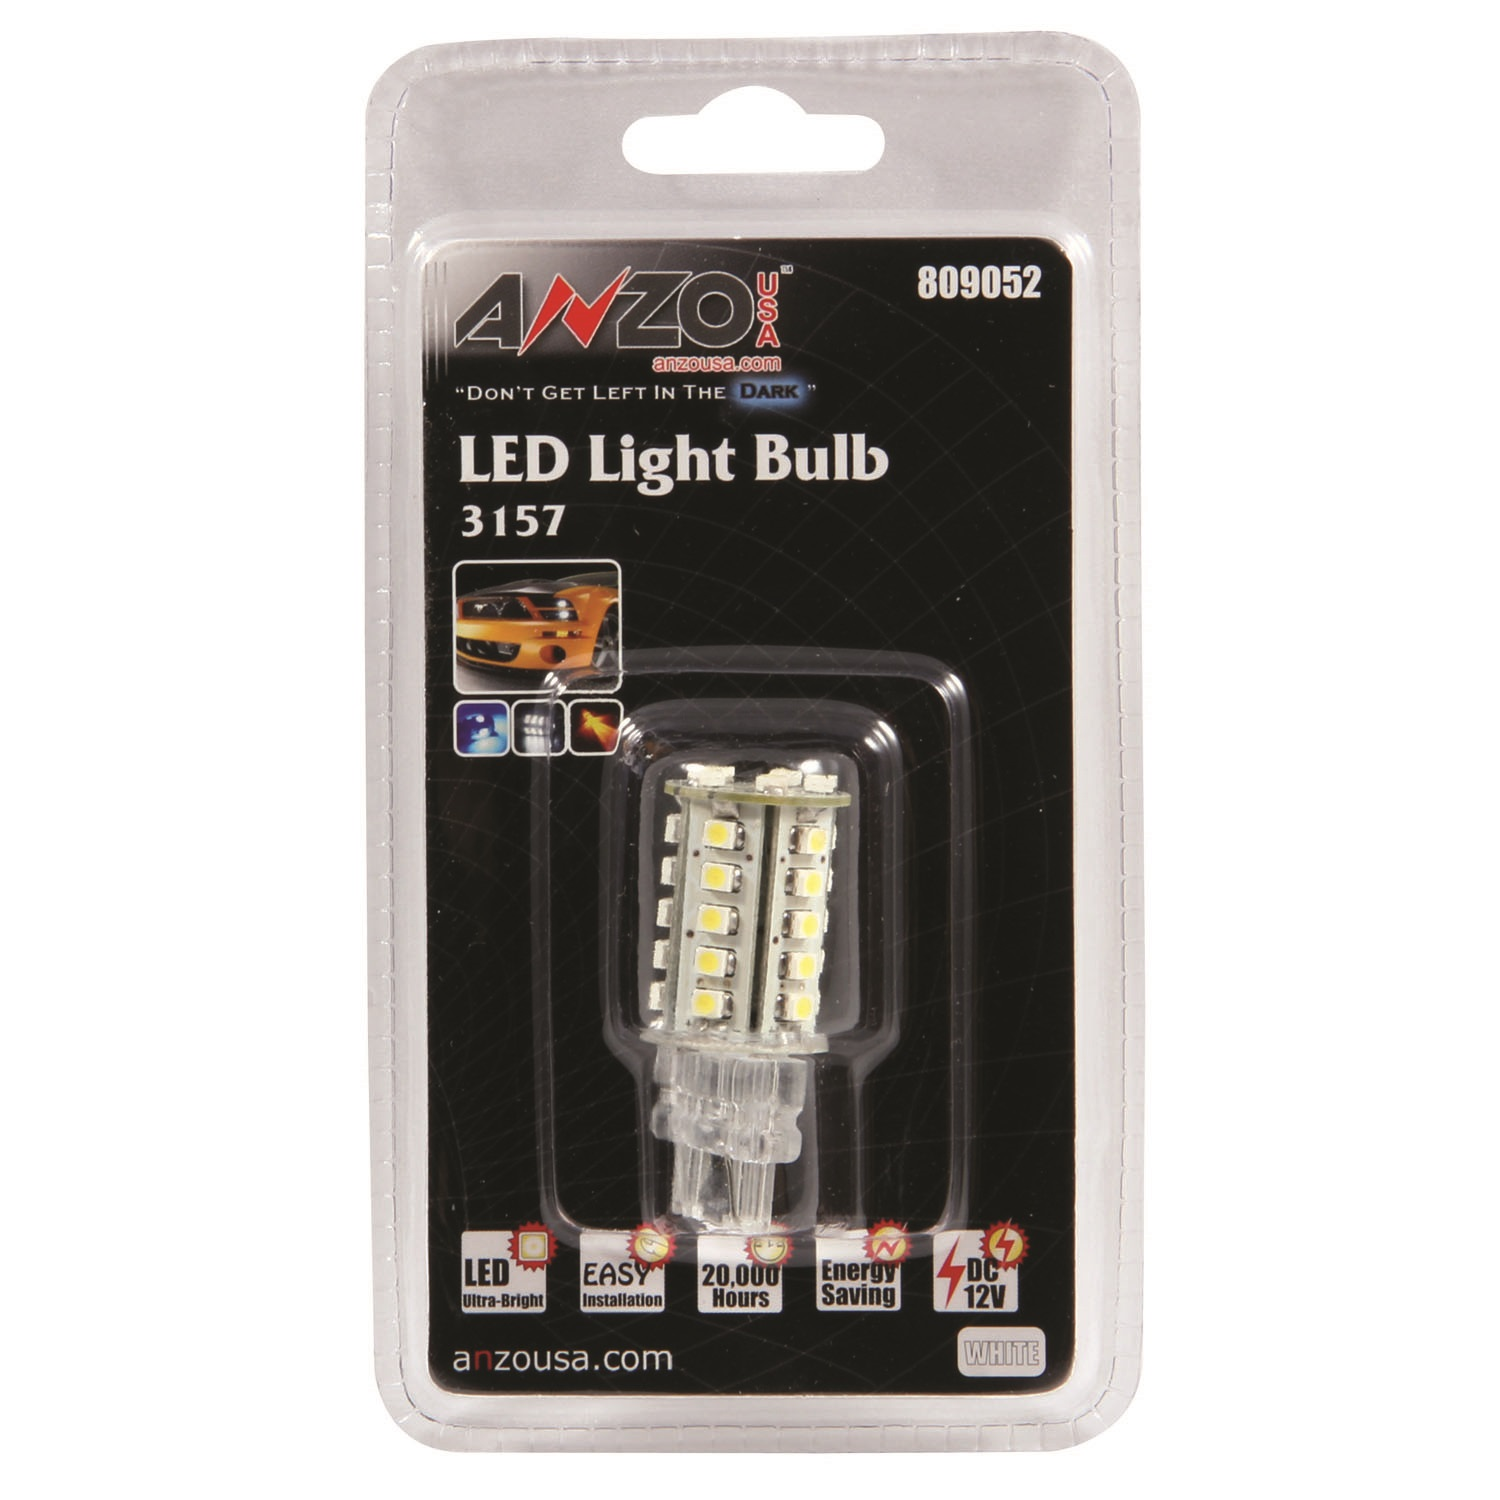 Anzo USA 809052 LED Replacement Bulb